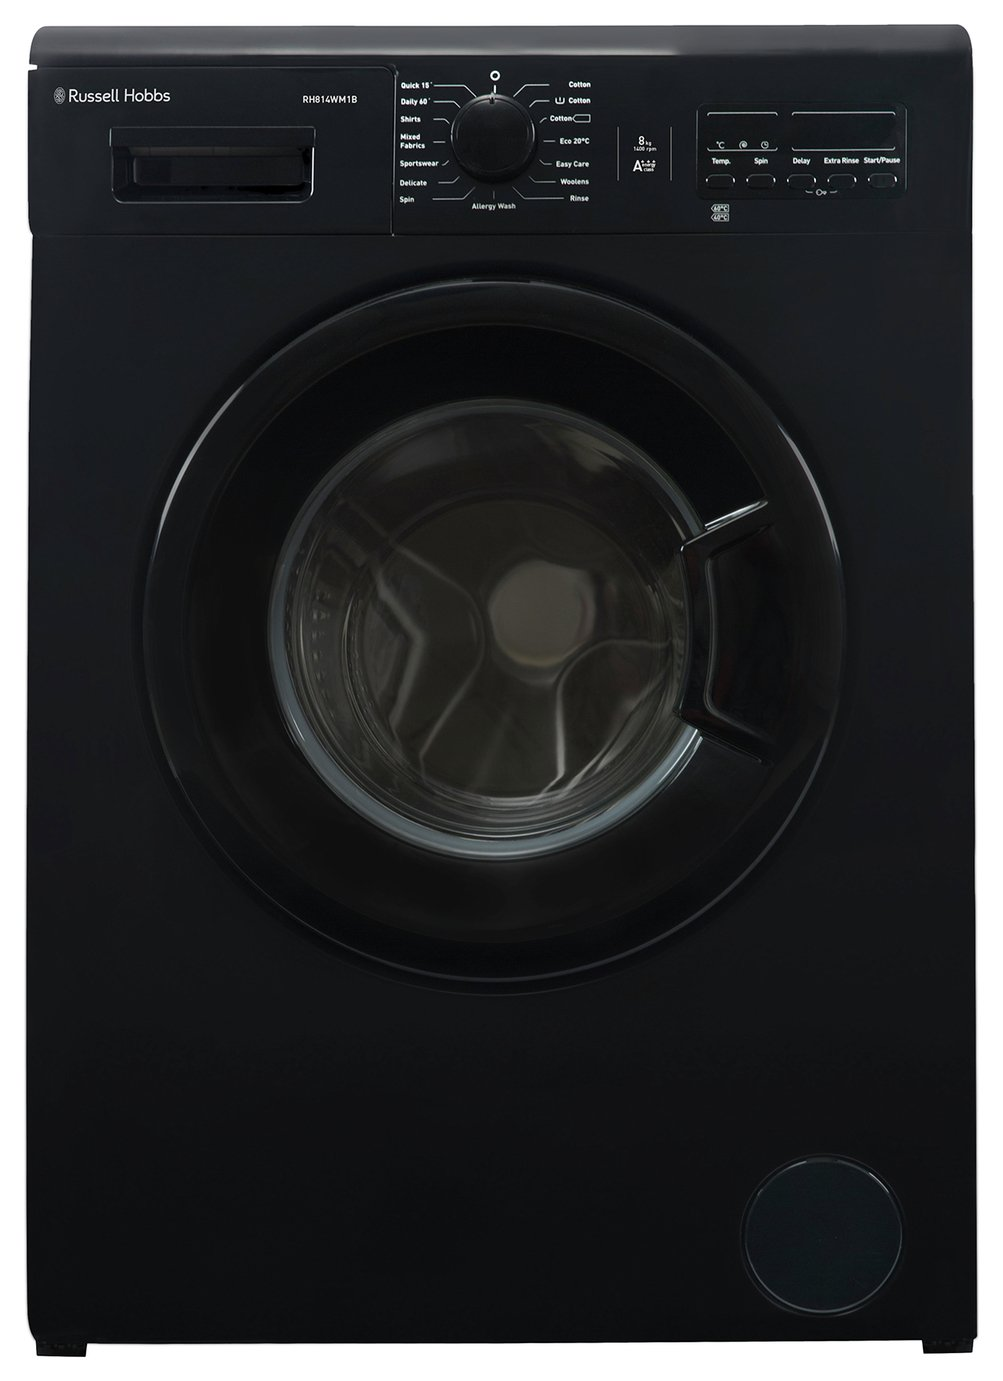 Russell Hobbs RH814WM1B 8KG 1400 Washing Machine - Black